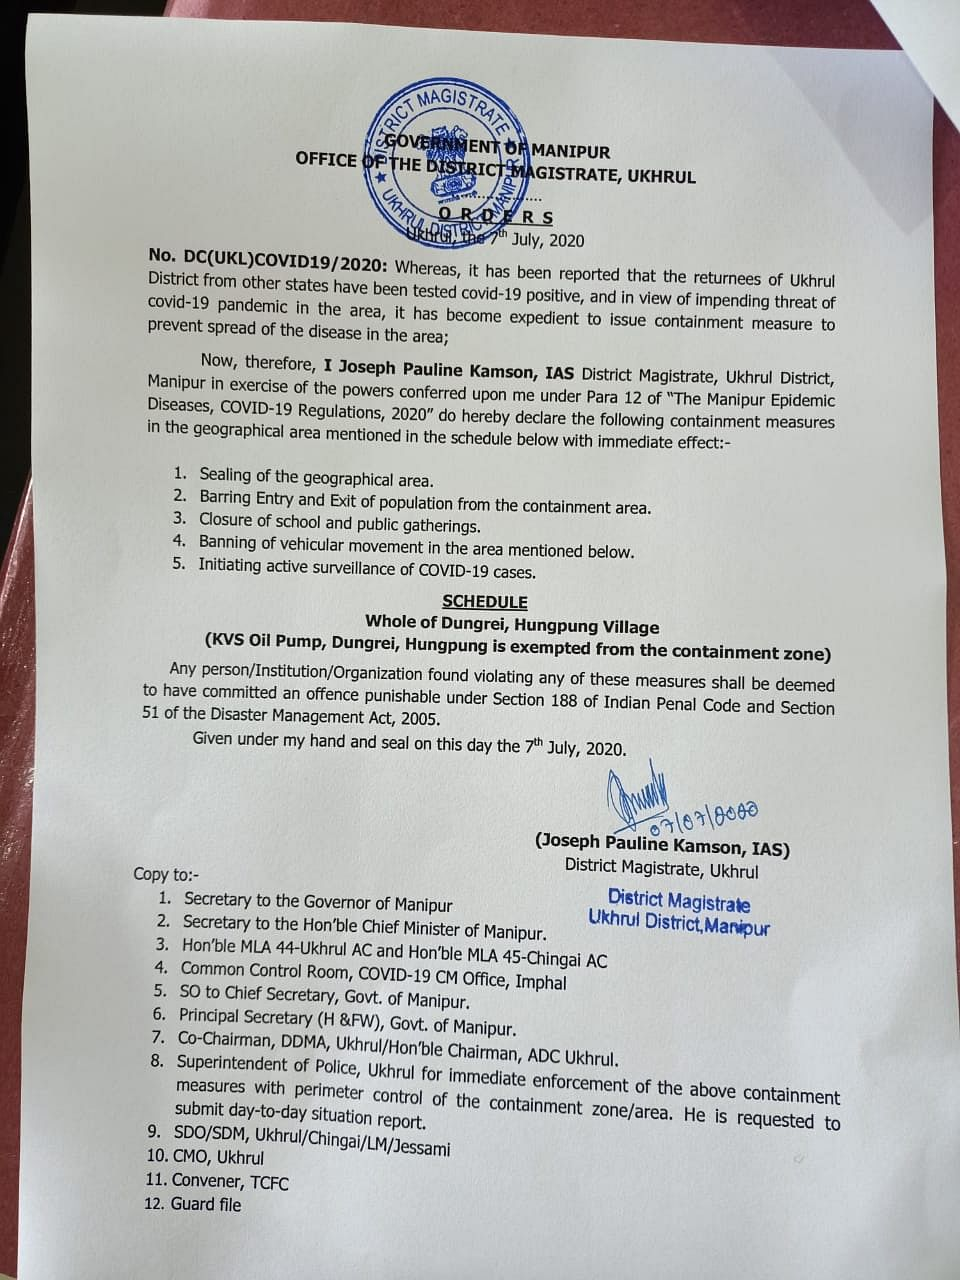 Containment measure notification issued by Ukhrul DC